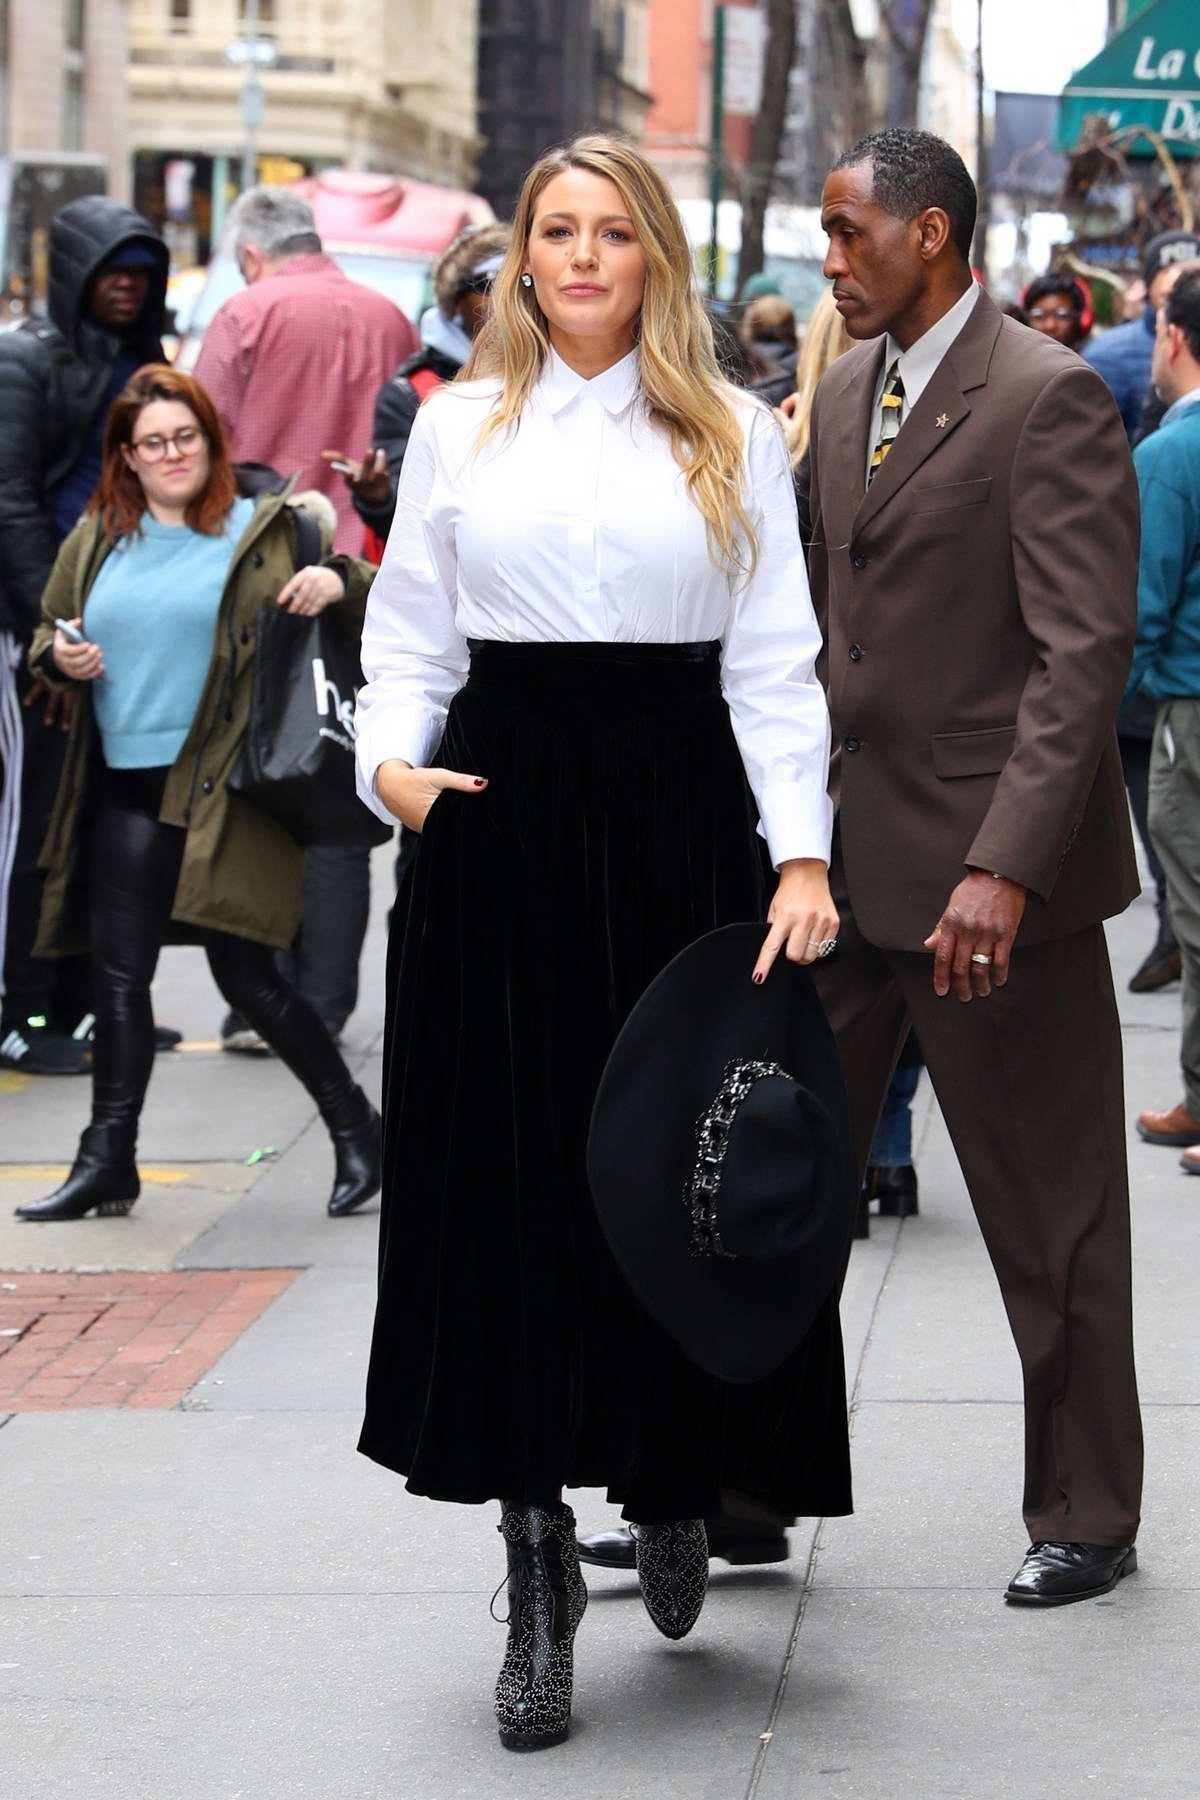 Blake Lively keeps it chic with a white shirt and black skirt as she leaves an office building in New York City